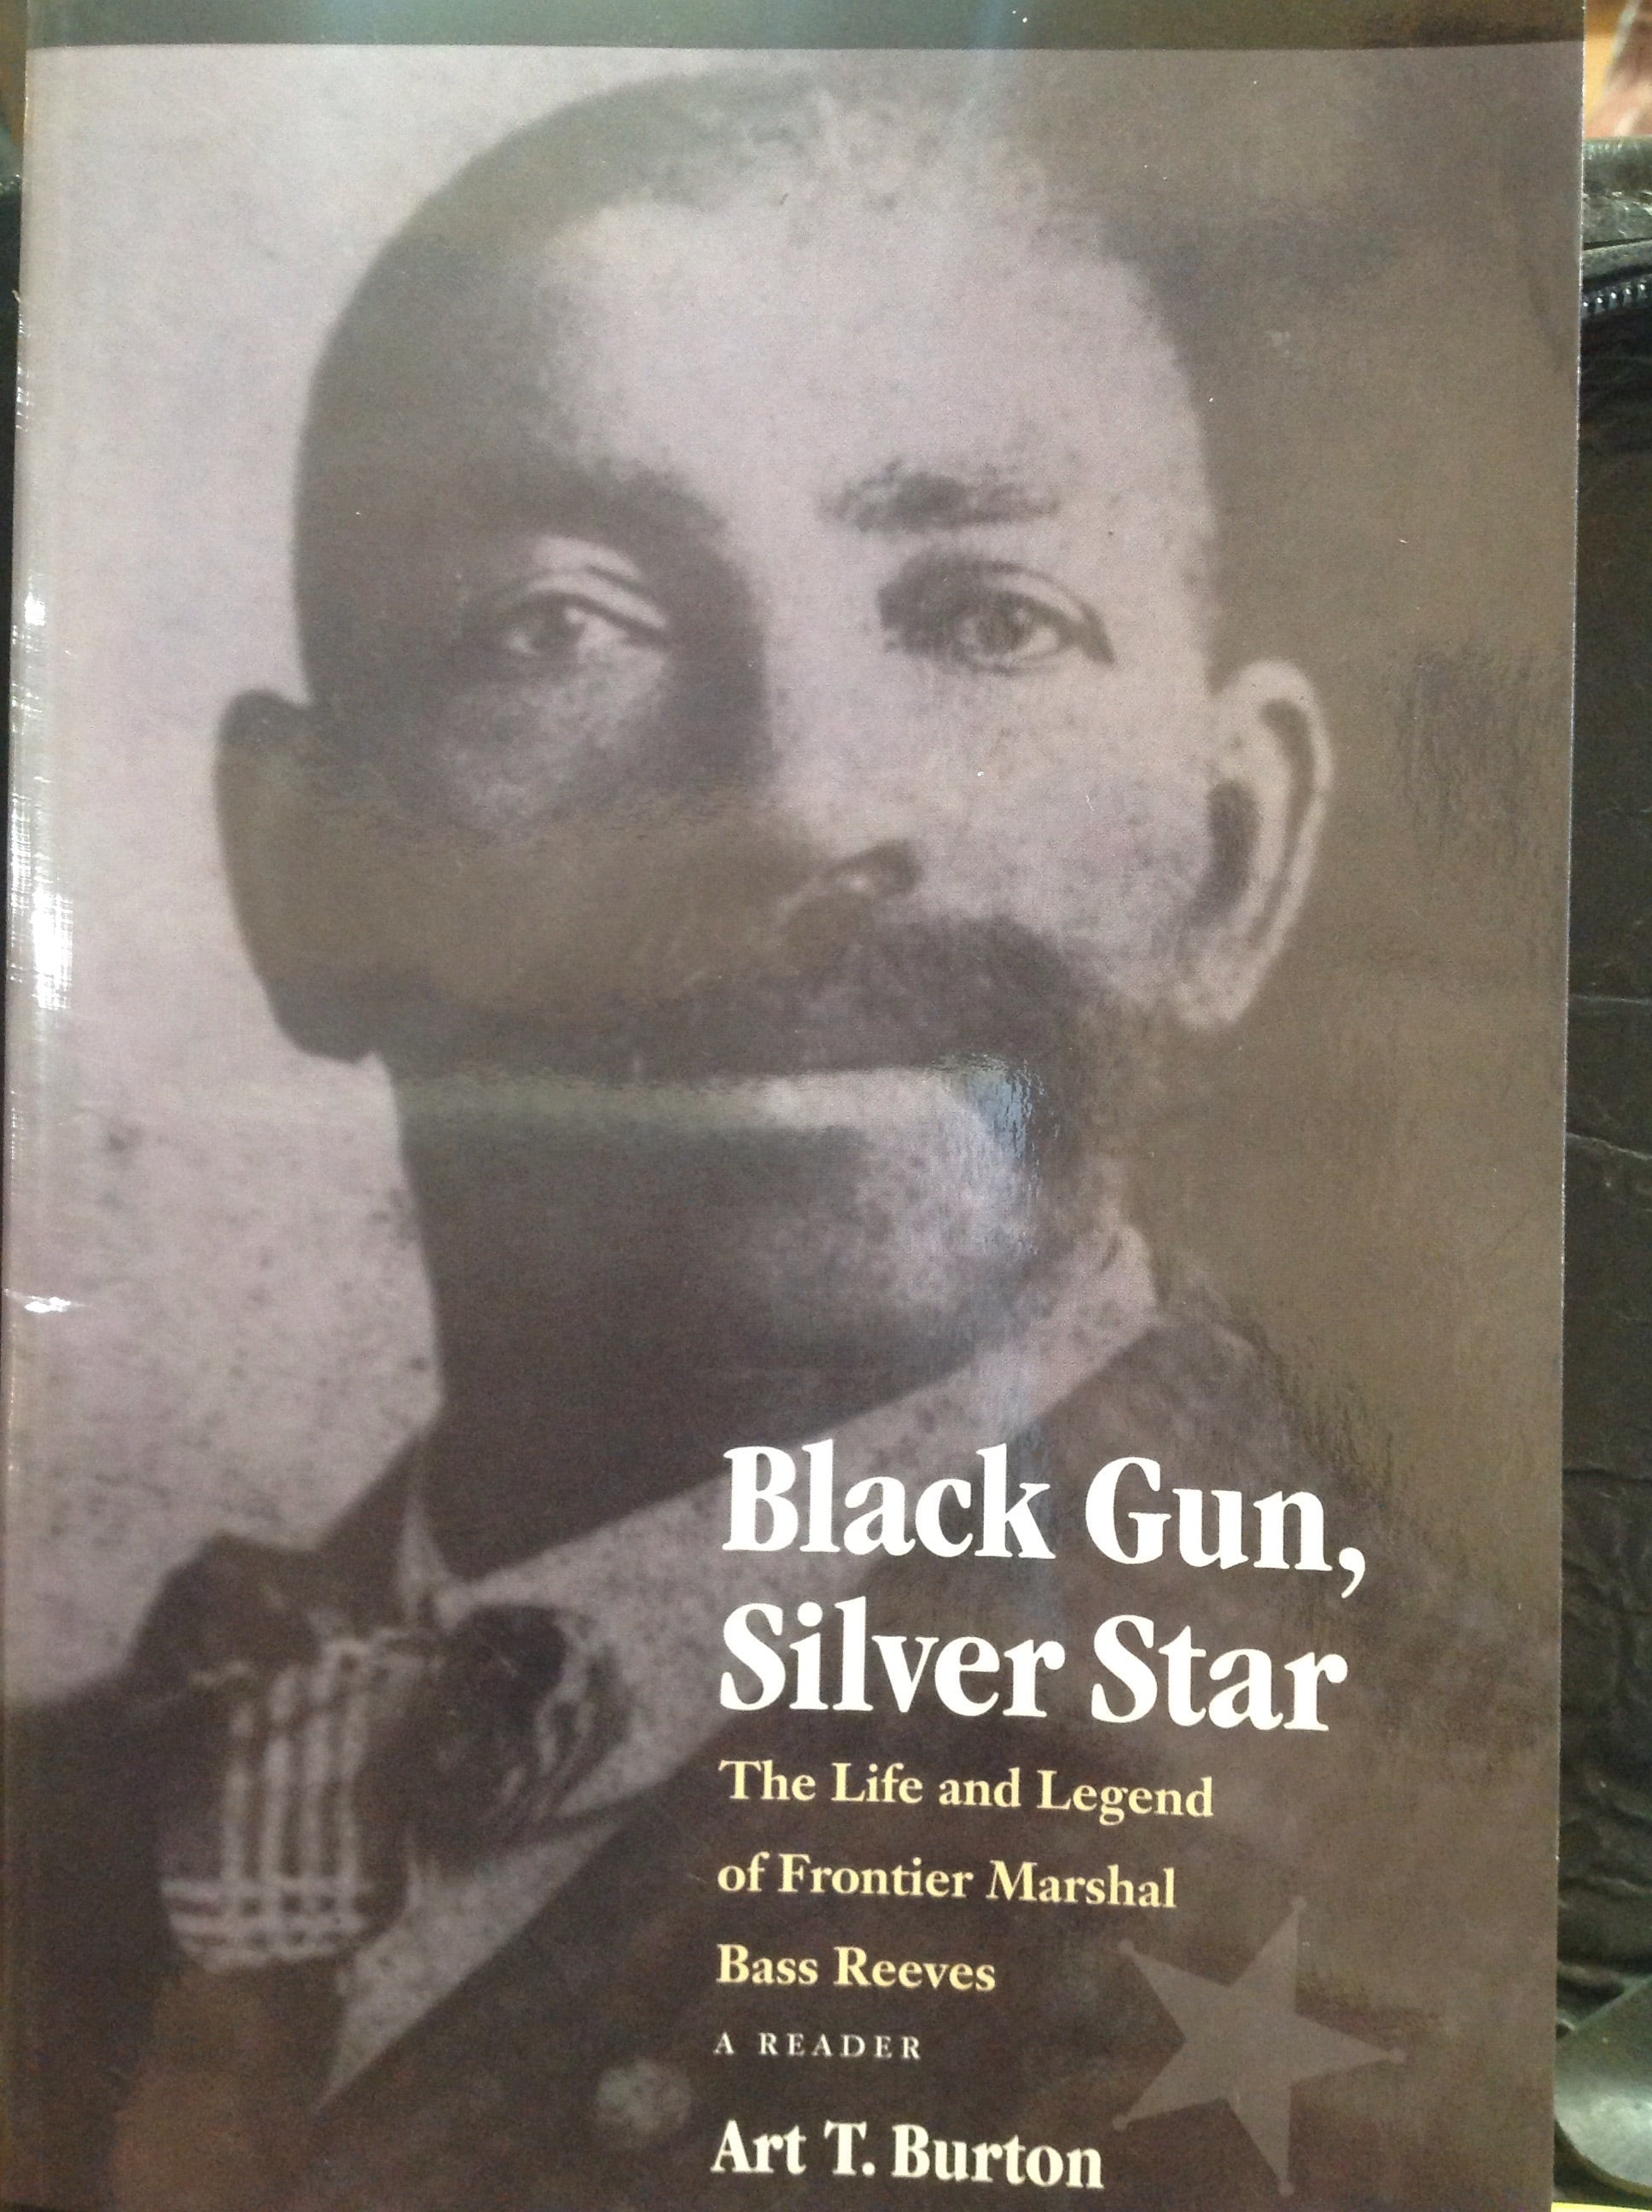 BOOKS - Black Gun, Silver Star: The Life and Legend of Frontier Marshal Bass Reeves